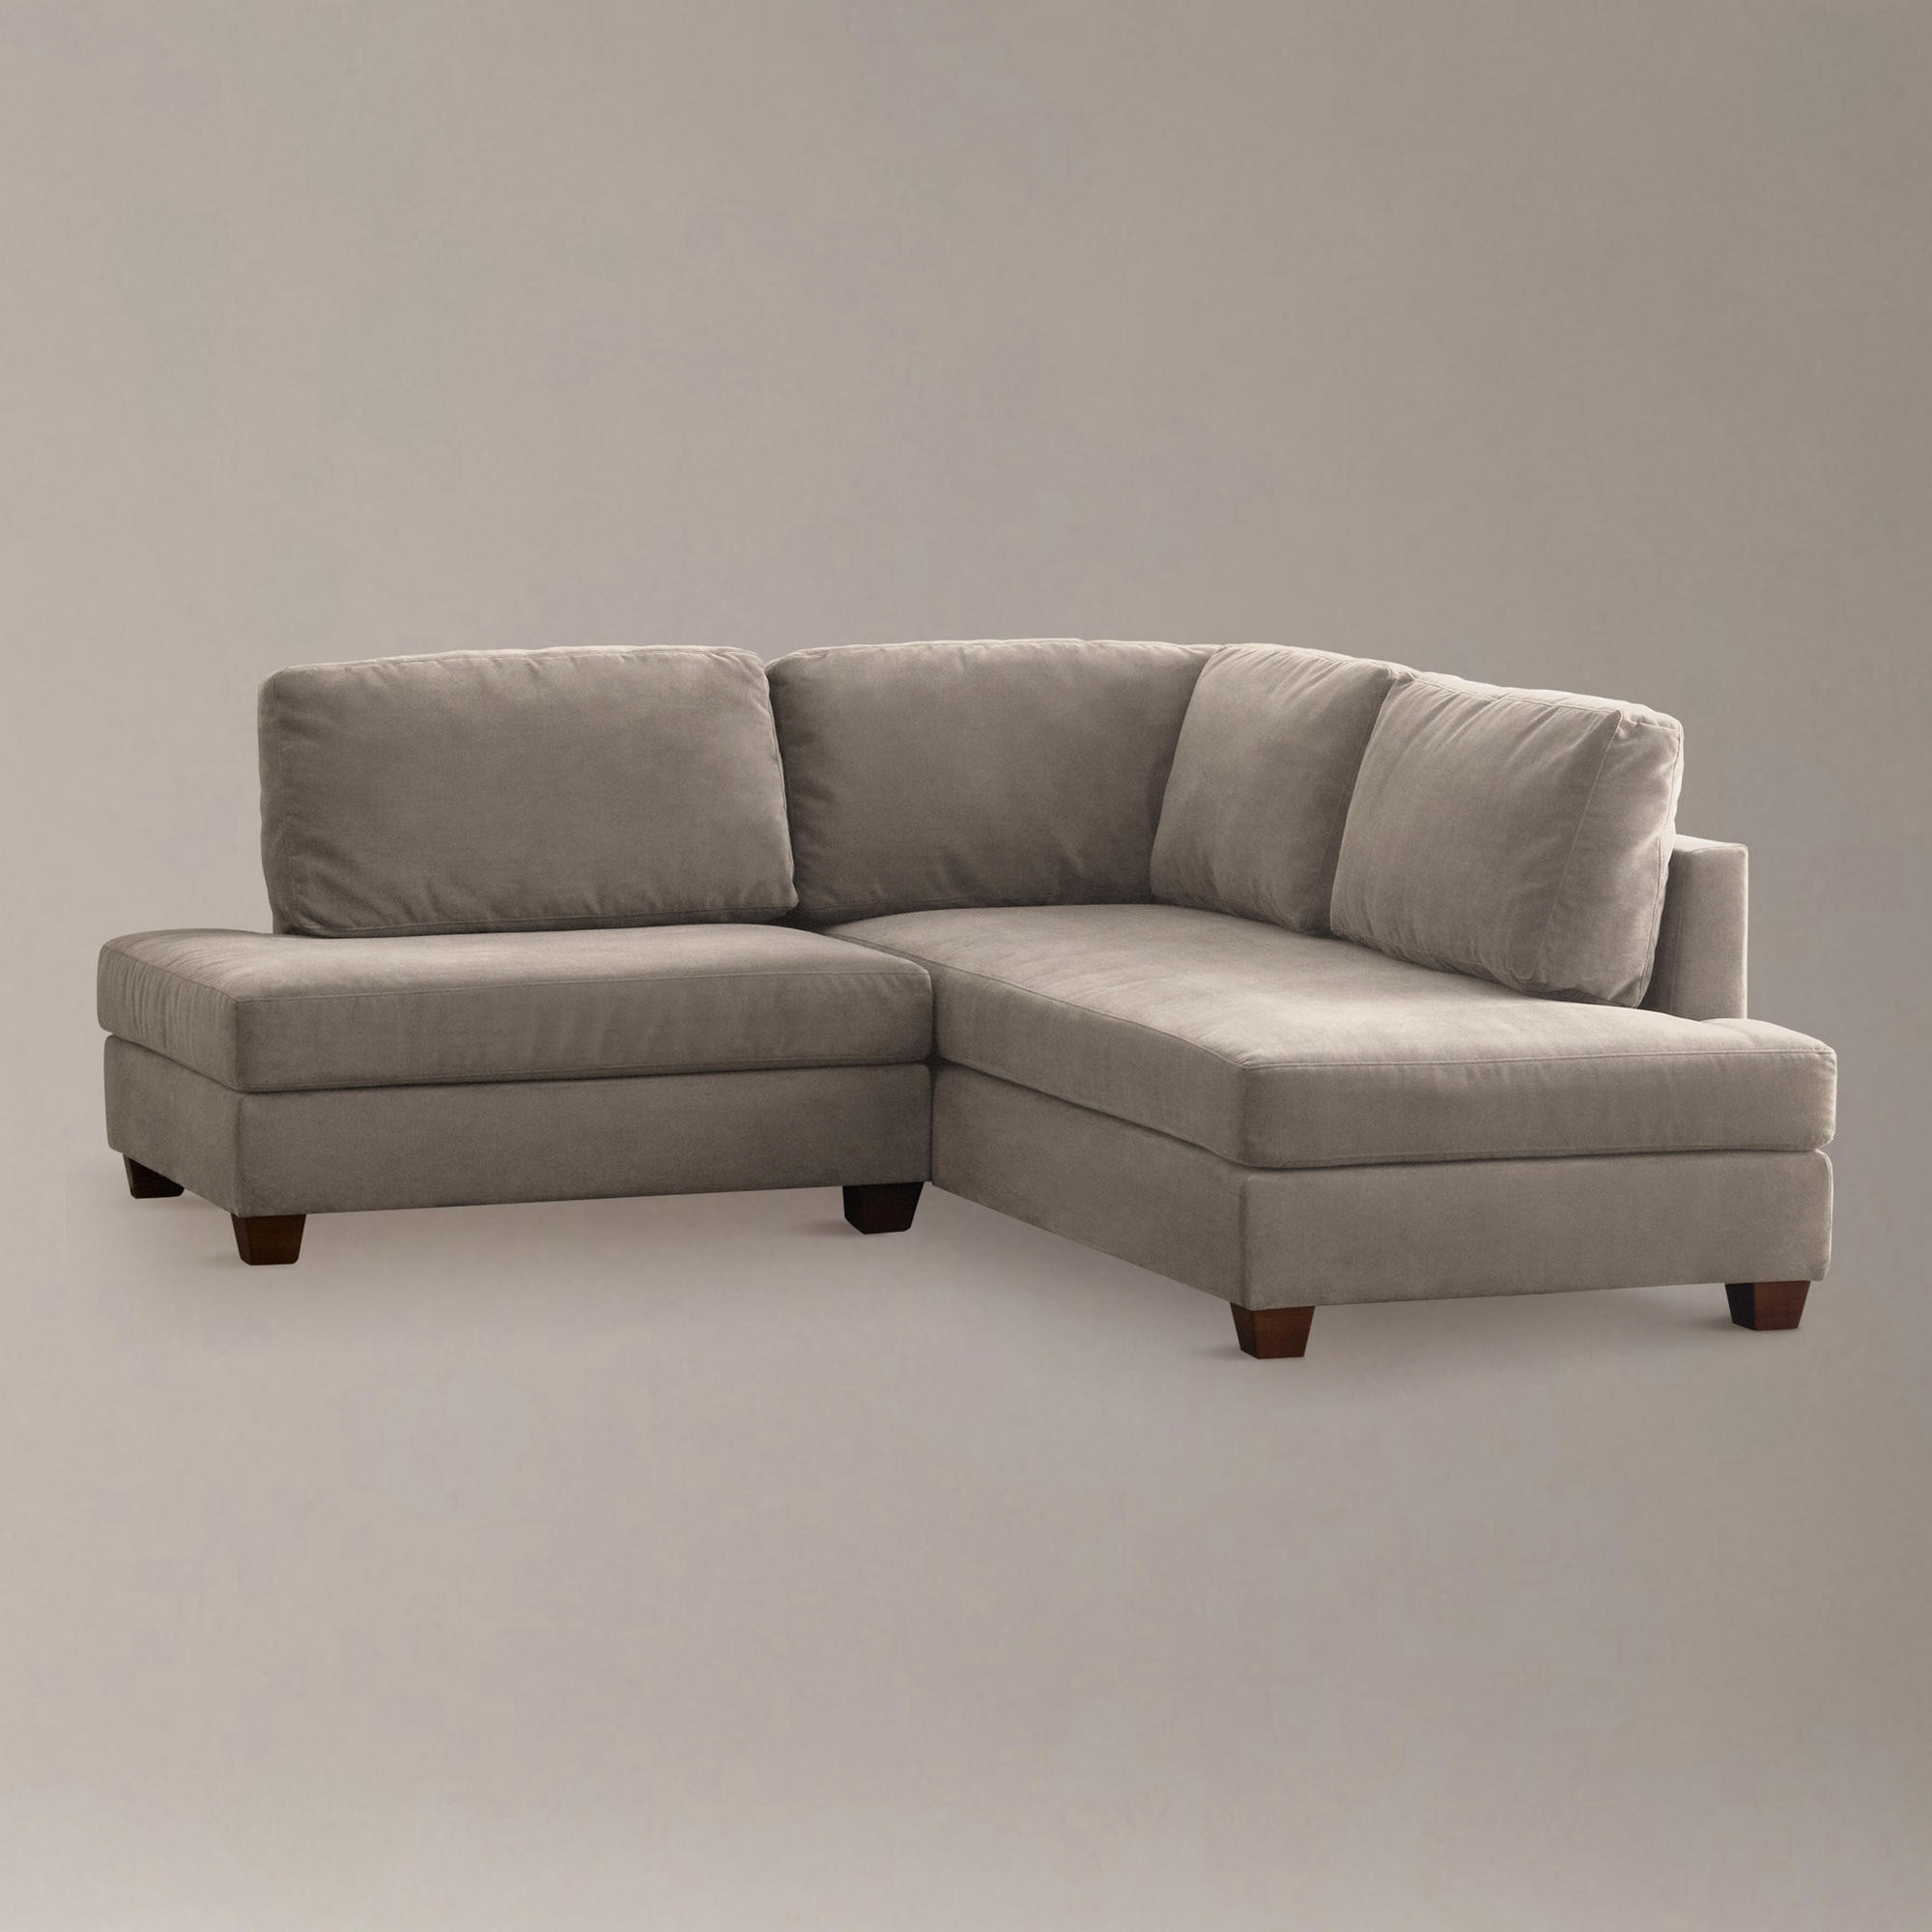 Small sofa with Chaise Terrific Sectional sofa Design Wonderful Small Sectional sofa for Small Wallpaper